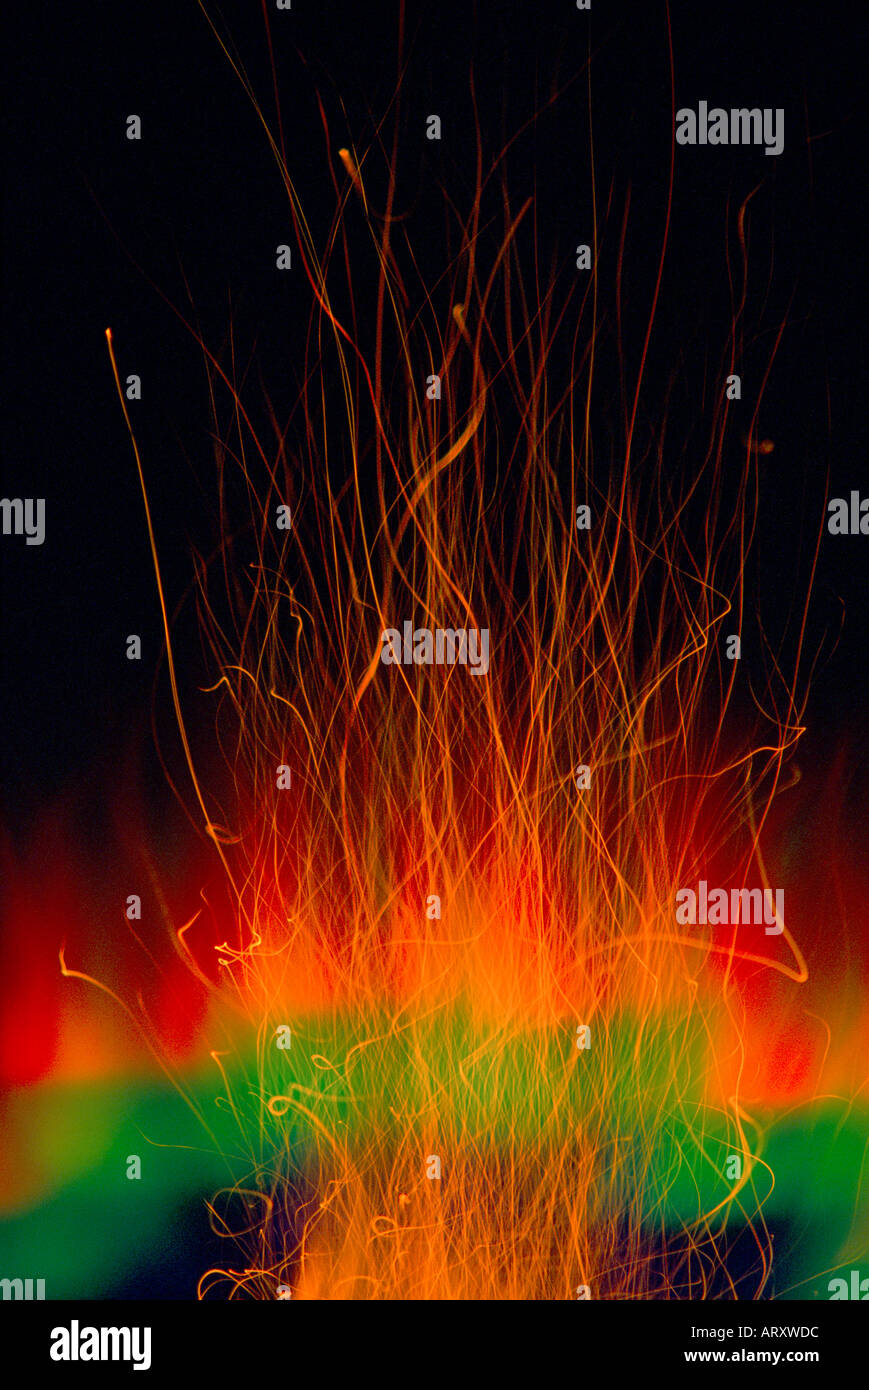 special effect abstract spark trails flames color burst Stock Photo